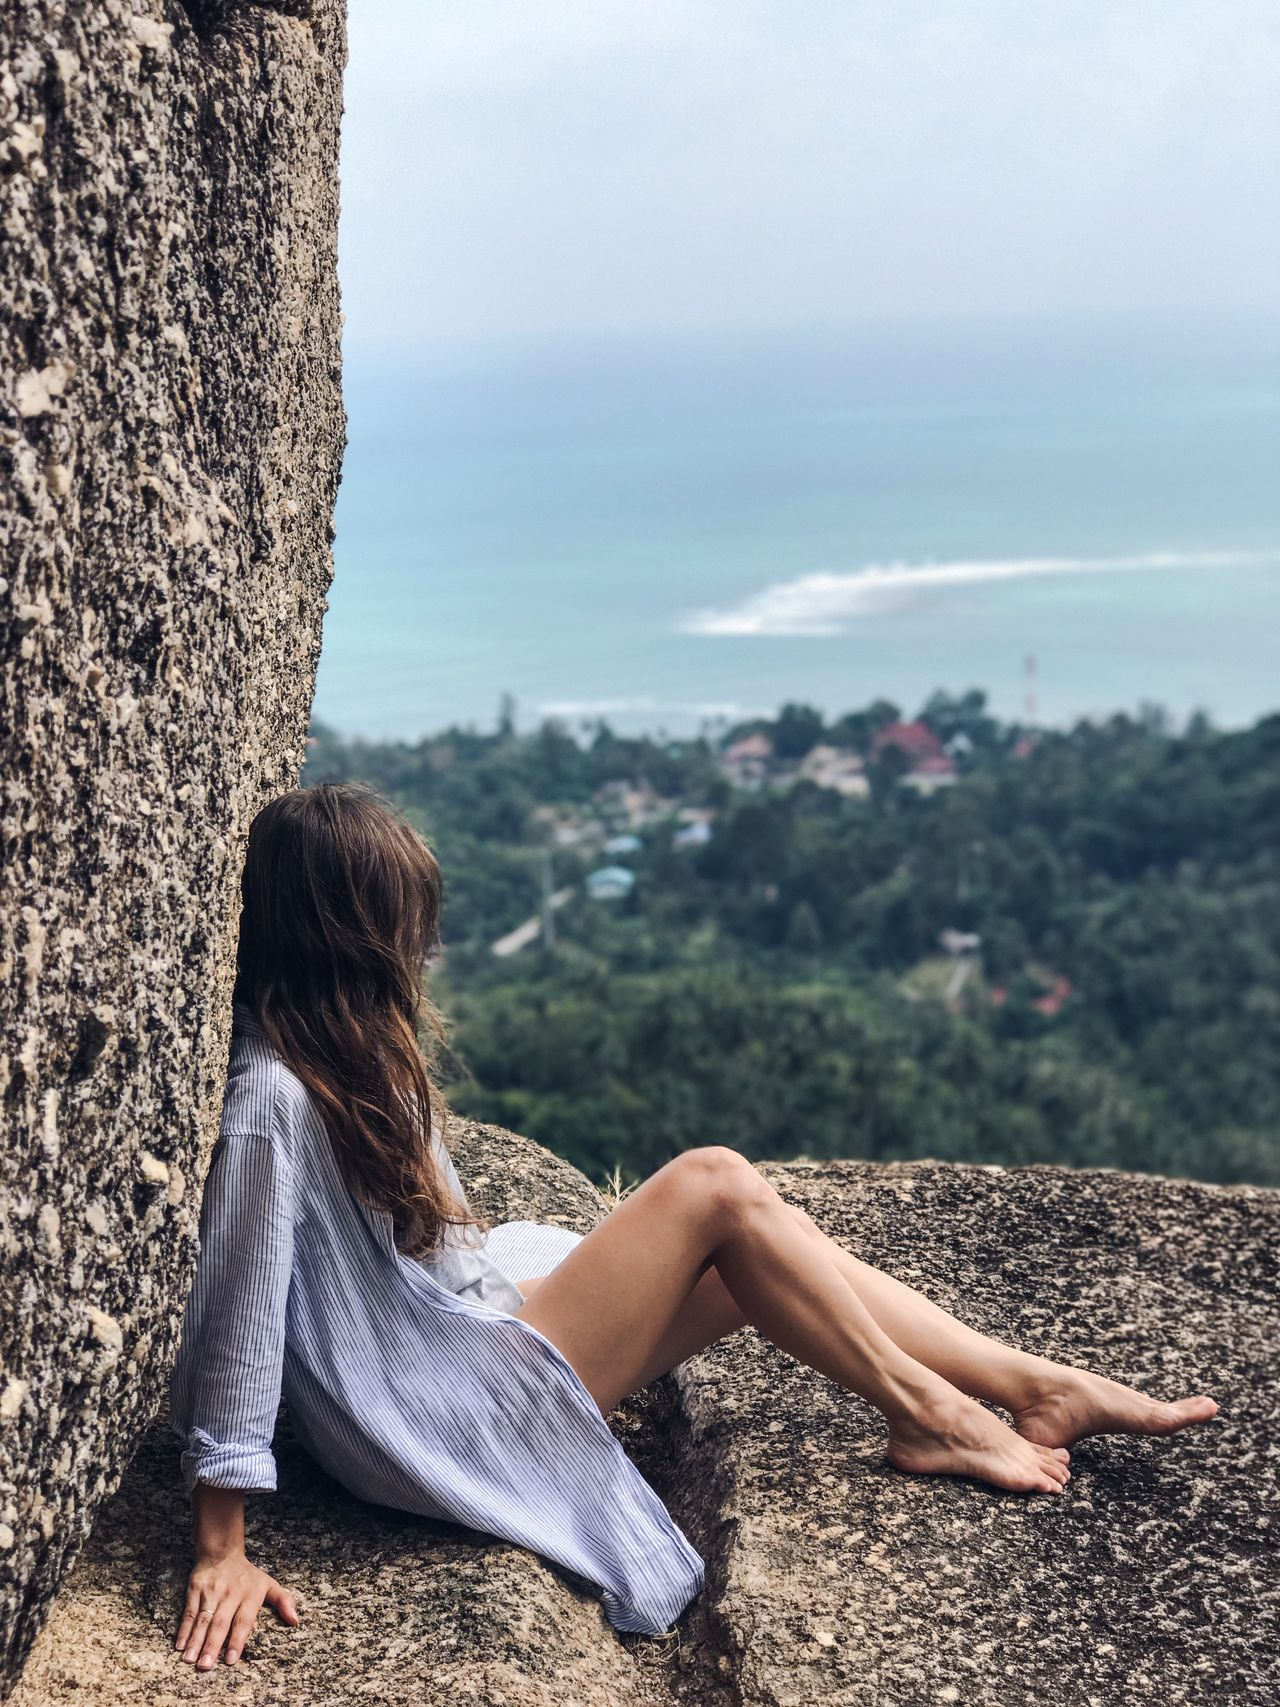 Adults Only Beautiful People Beauty Beauty In Nature Full Length Koh Samui Leisure Activity Long Hair Nature One Person One Woman Only One Young Woman Only Only Women Outdoors People Real People Relaxation Rock - Object Sea Sitting Vacations Water Women Young Adult Young Women